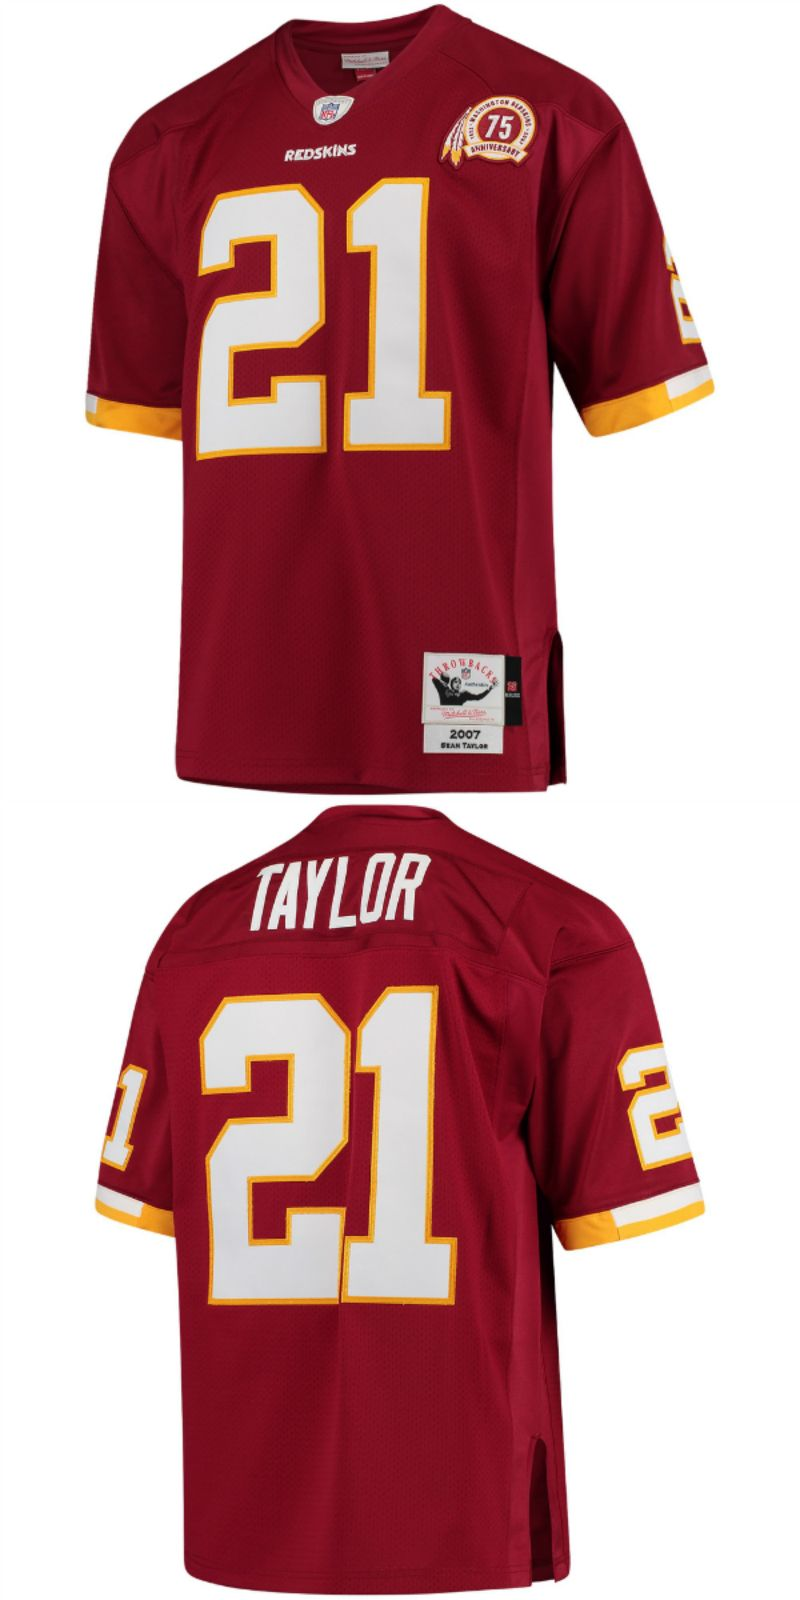 the best attitude c9872 da3ab Sean Taylor Washington Redskins Mitchell   Ness 2007 Authentic Retired